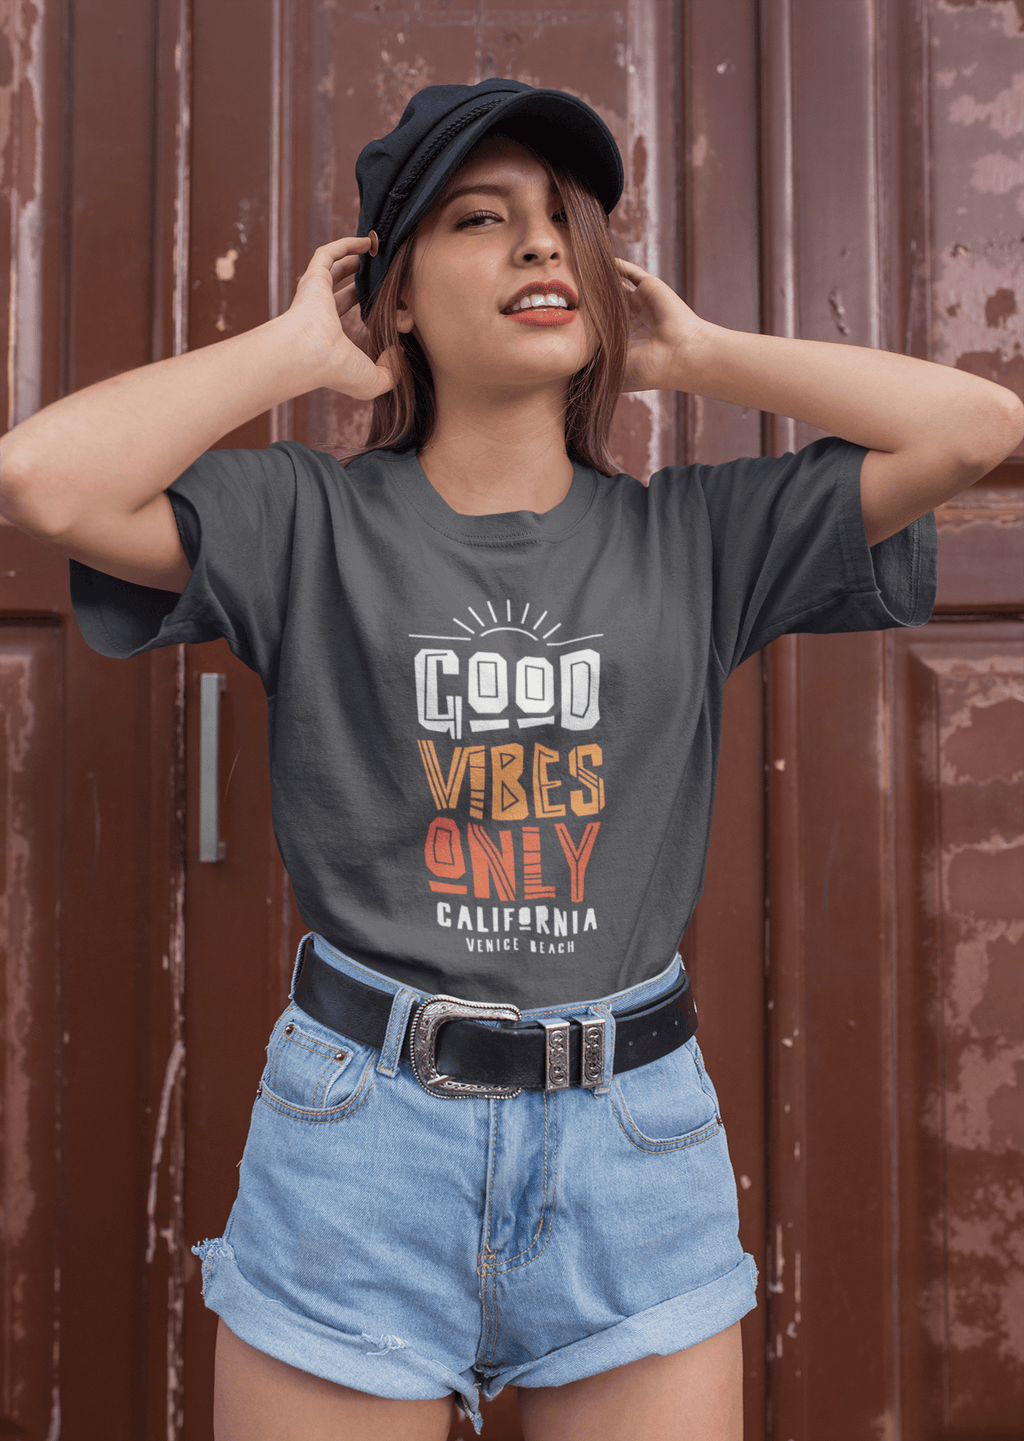 Good Vibes Only- Women's Short-Sleeve T-Shirt (Cali Edition)